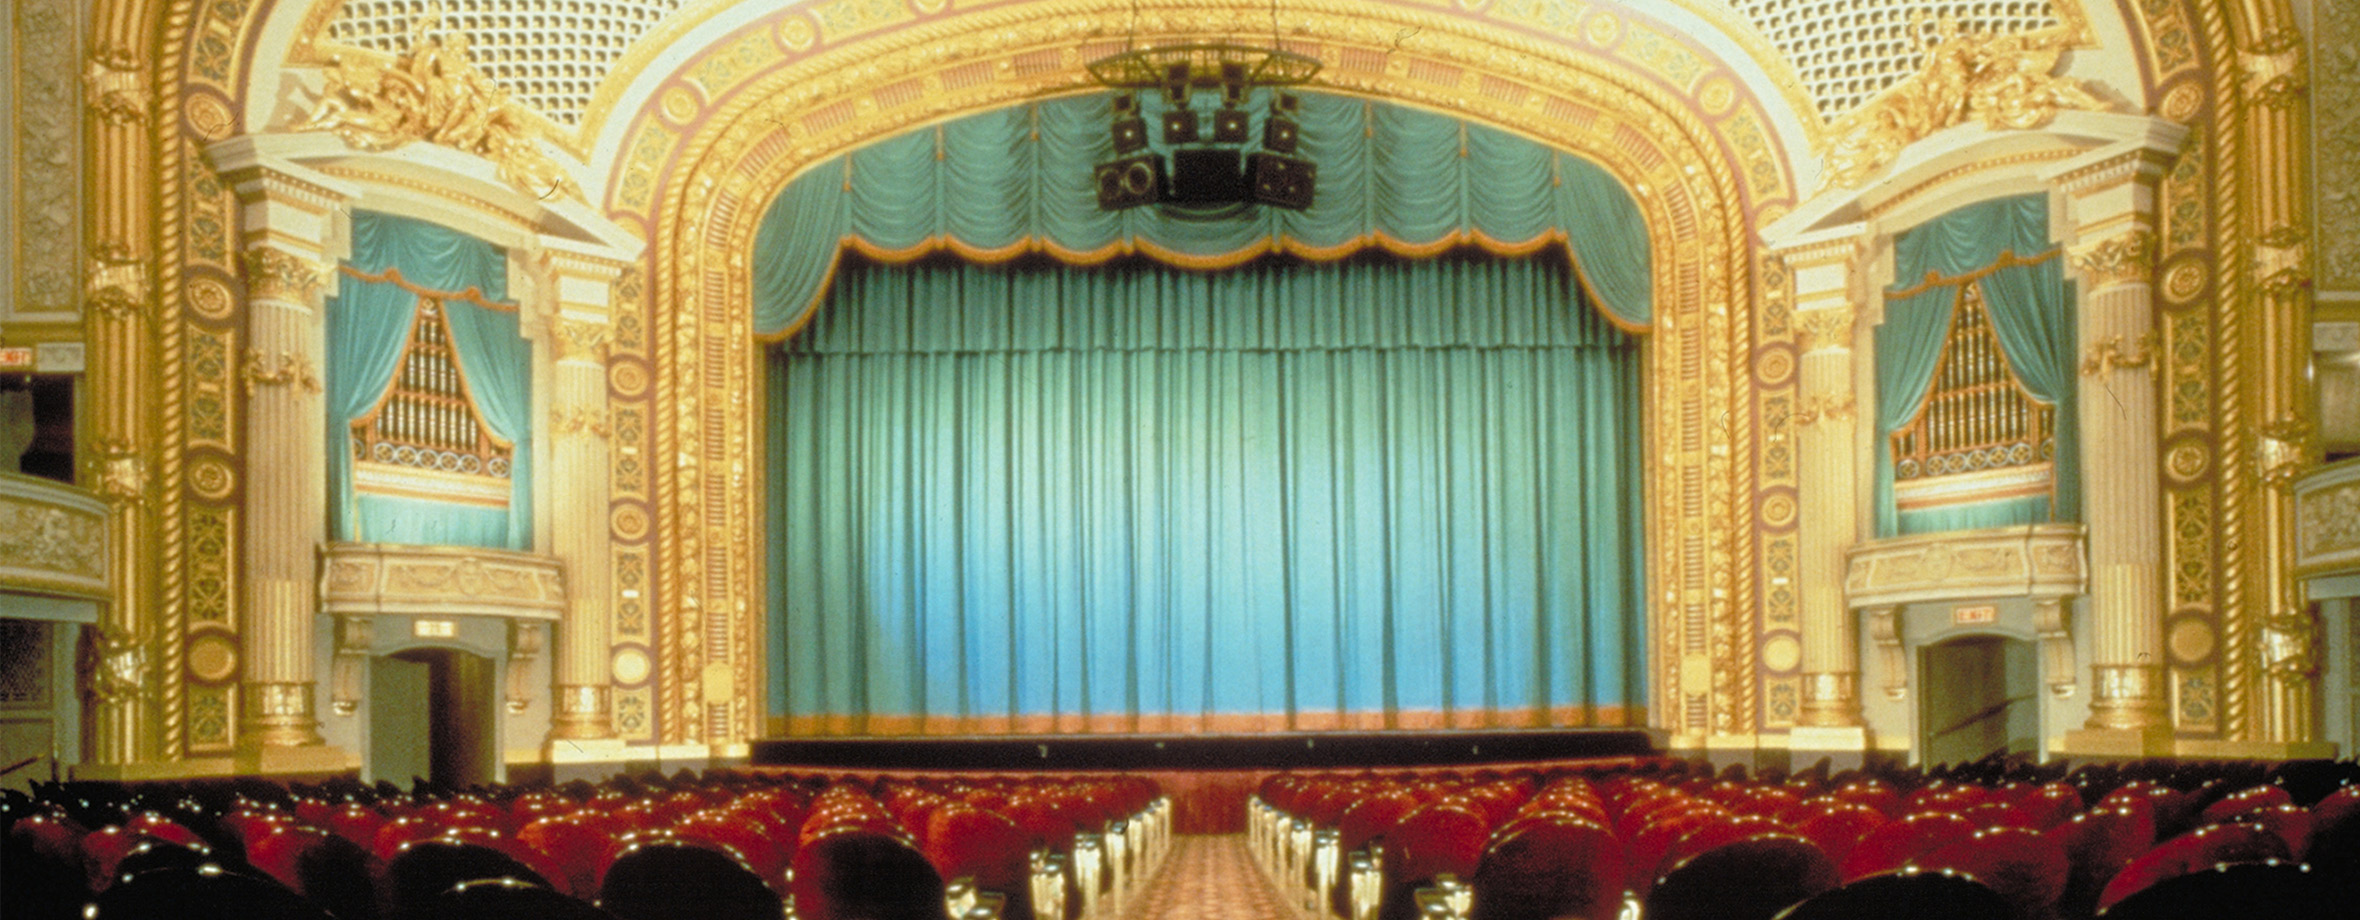 Orchestra view of the State Theatre